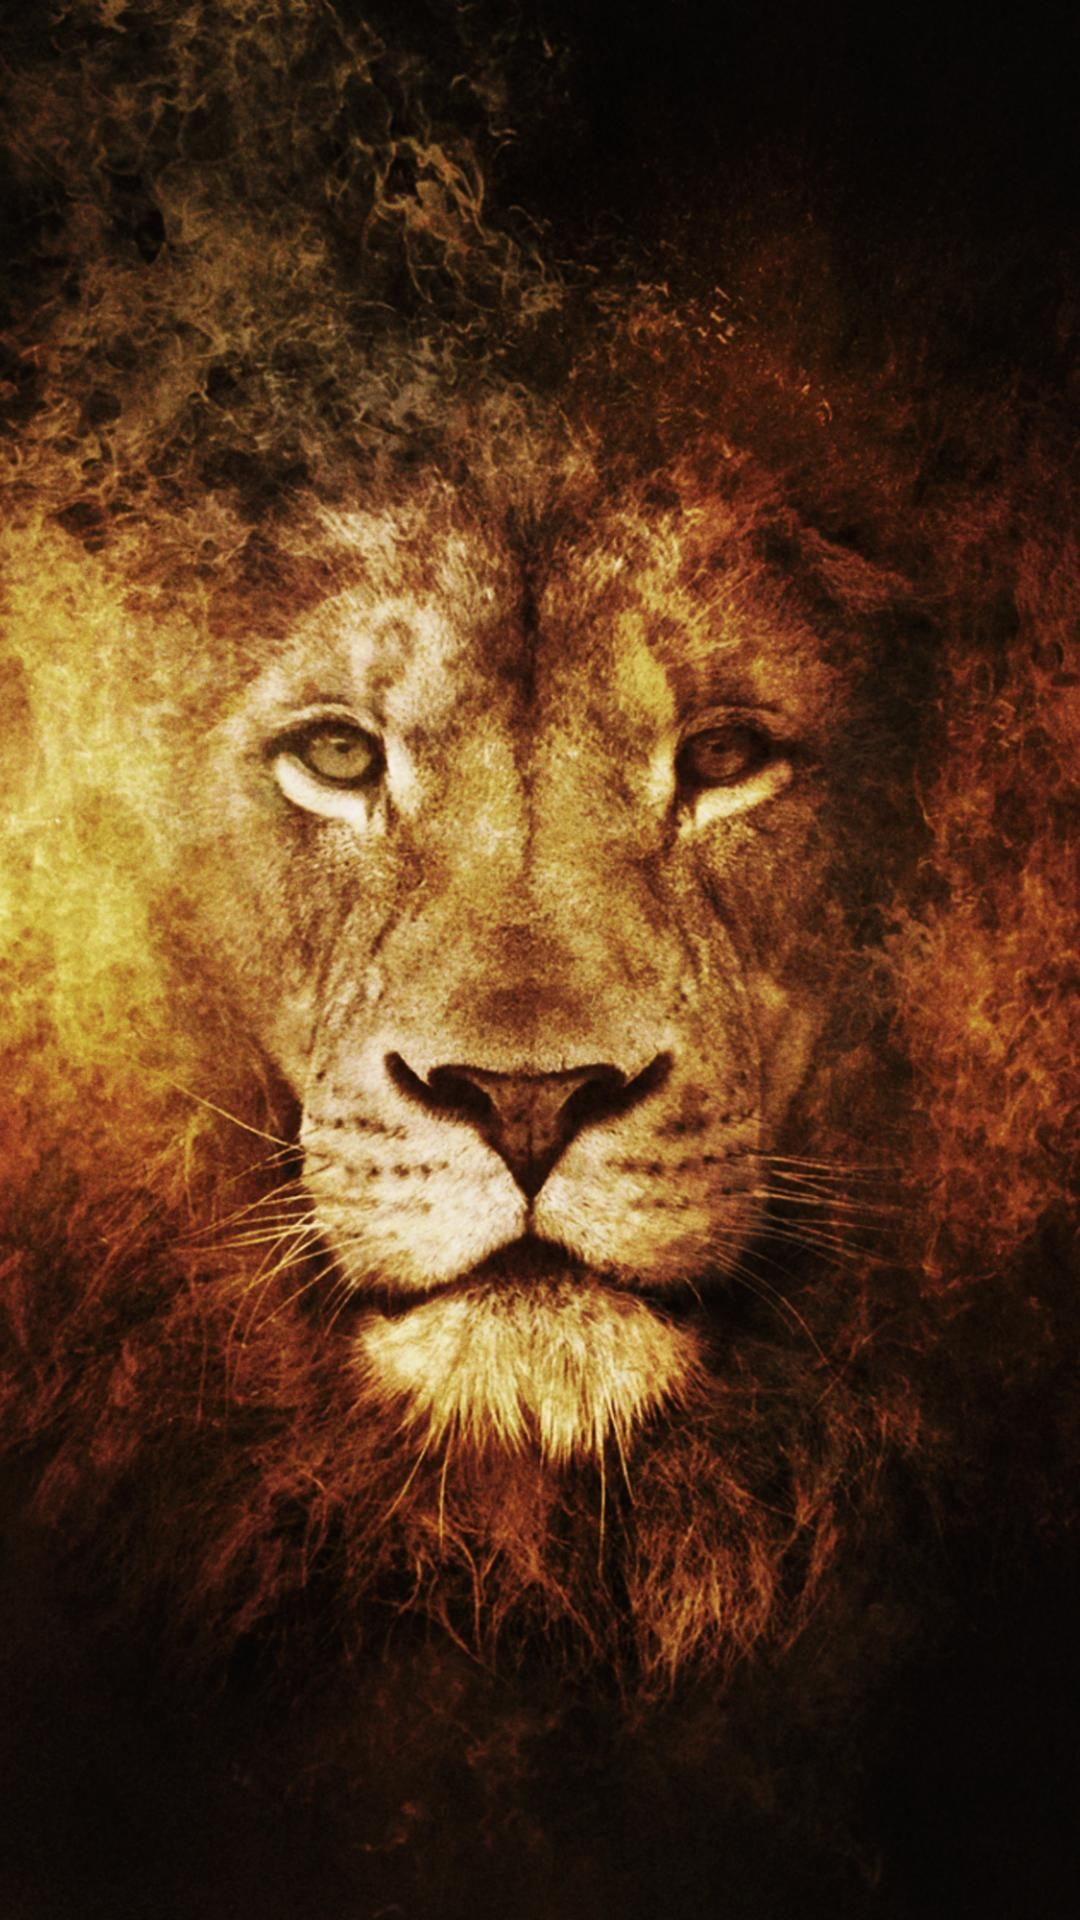 lion wallpaper hd animals lion iphone 6 plus wallpaper | tat animals